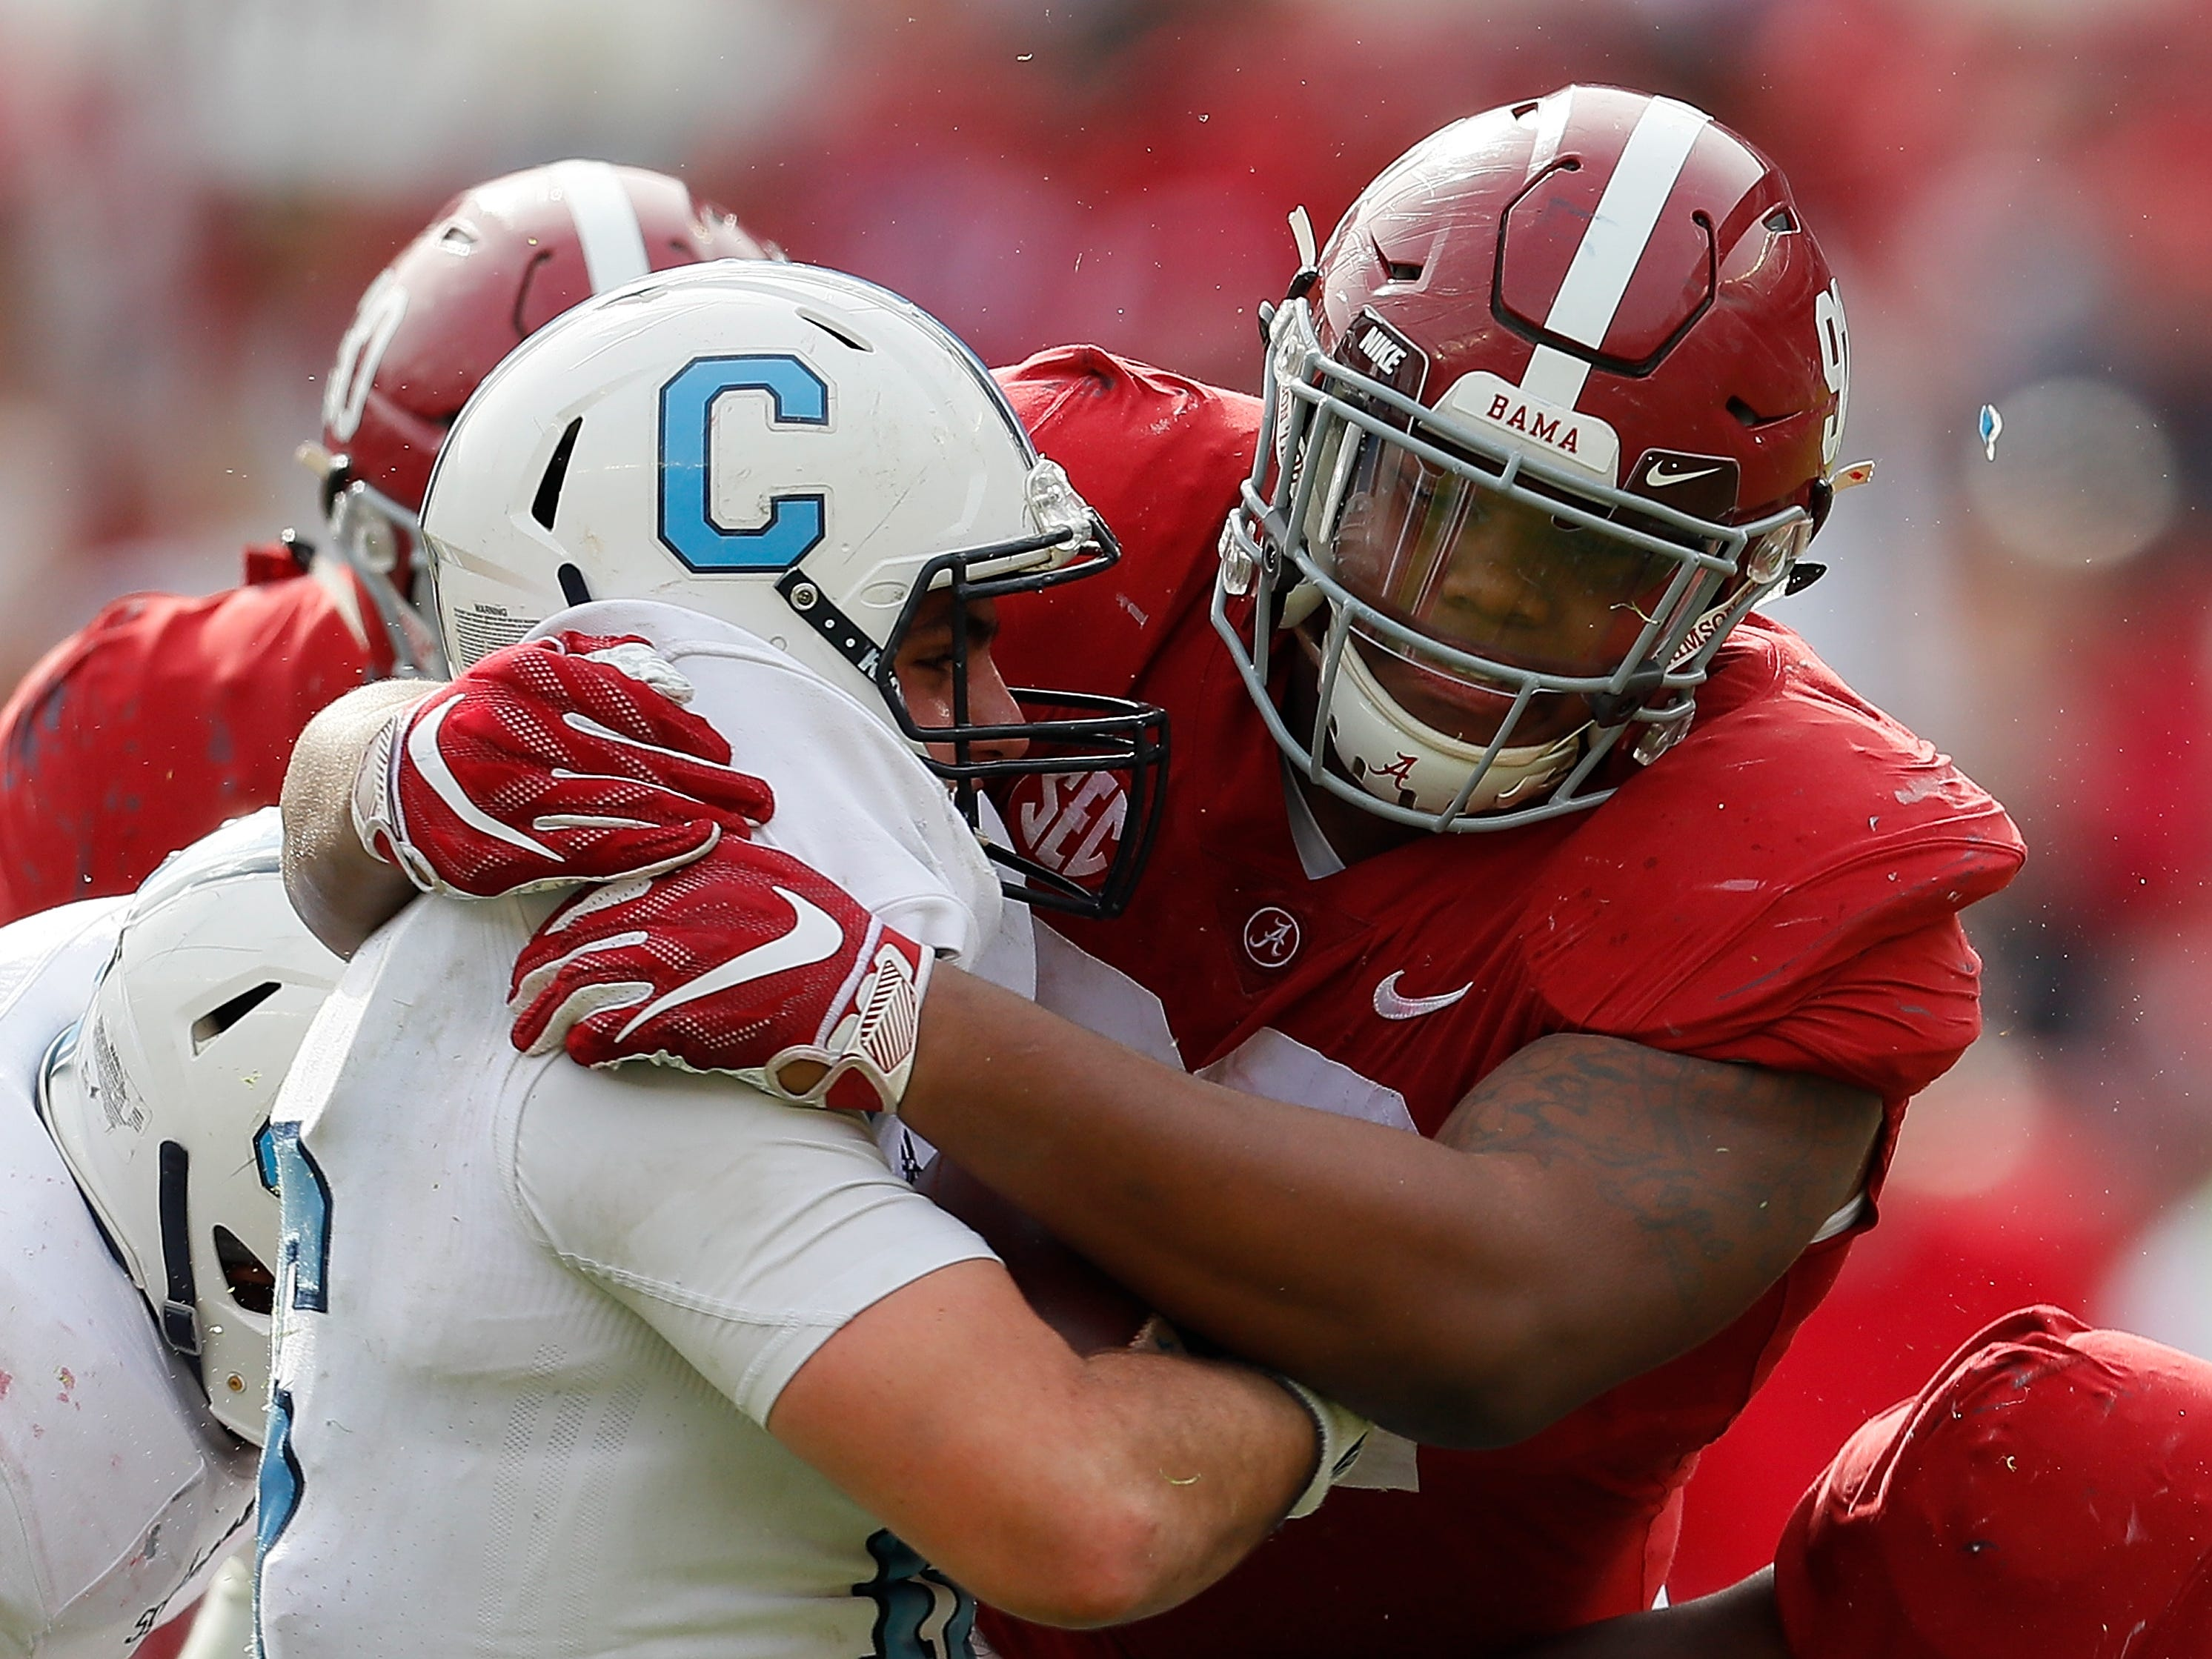 2. Quinnen Williams, DT, Alabama: Williams was under the radar entering this season, overshadowed by some of his previously more productive teammates, but he's come on as strong as any prospect in 2018 and comes from a college system that translates well to the one run in Detroit.